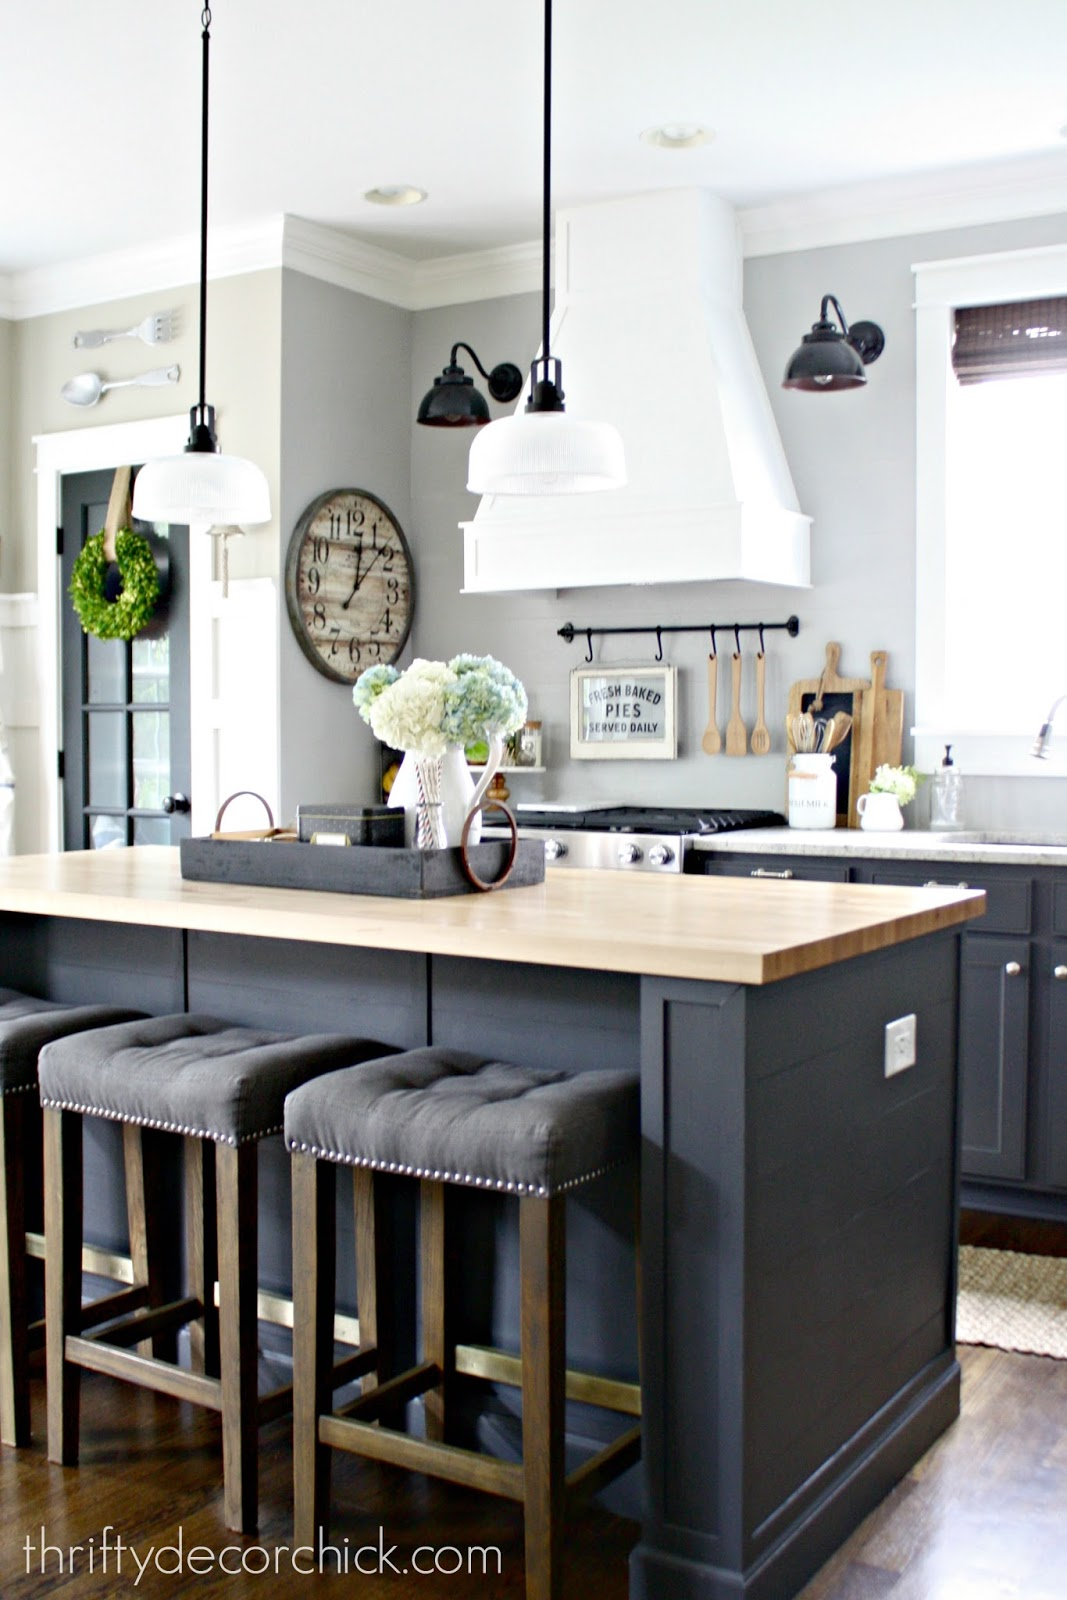 Everything you need to know about butcher block counters for Thrifty decor